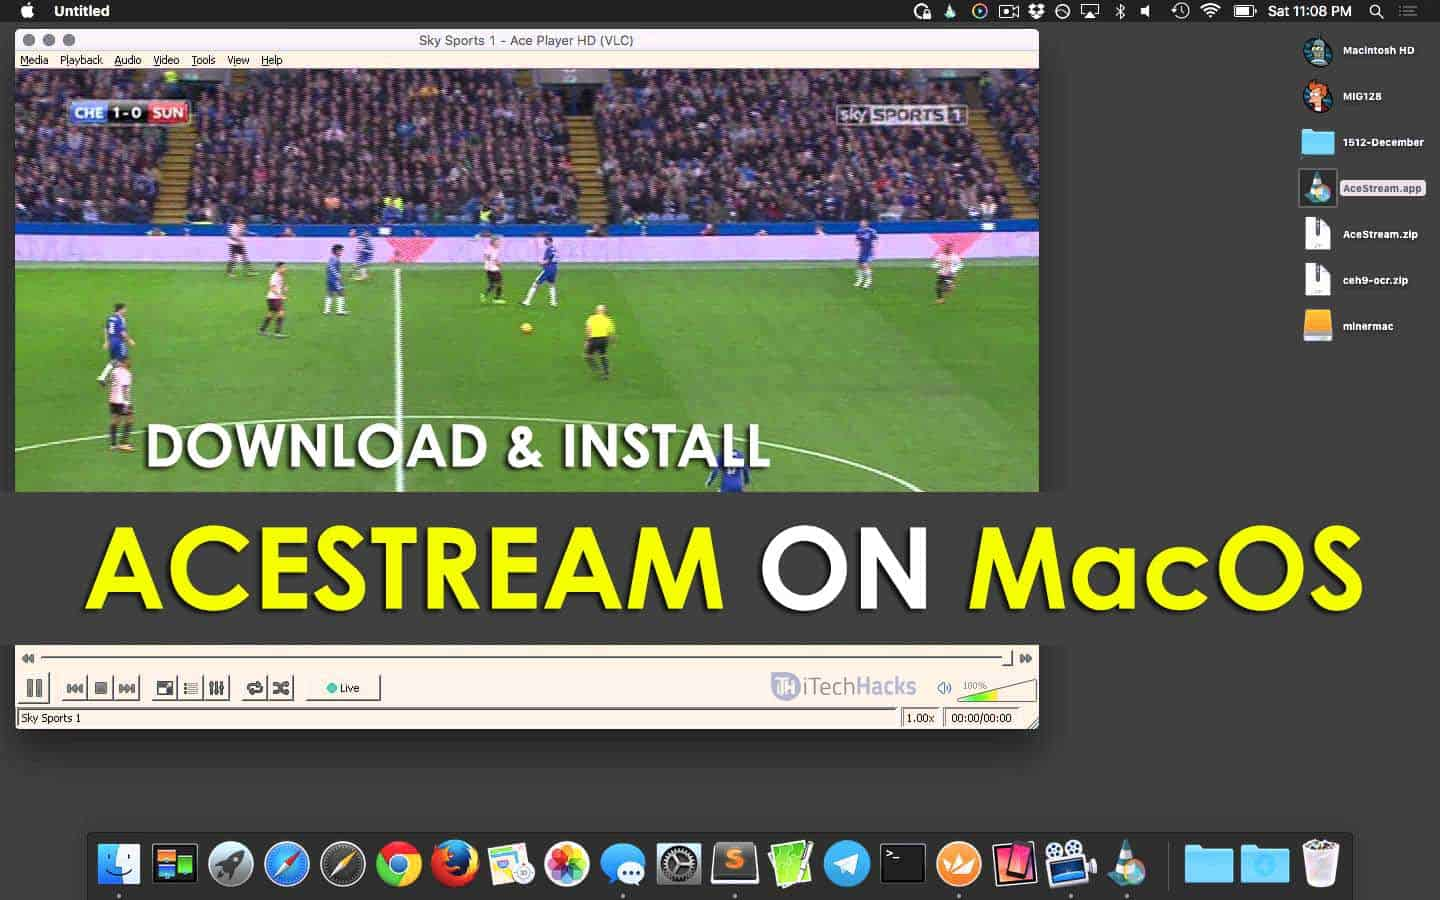 Acestream for Mac OS X 2019 - Watch Acestream Channels & Links